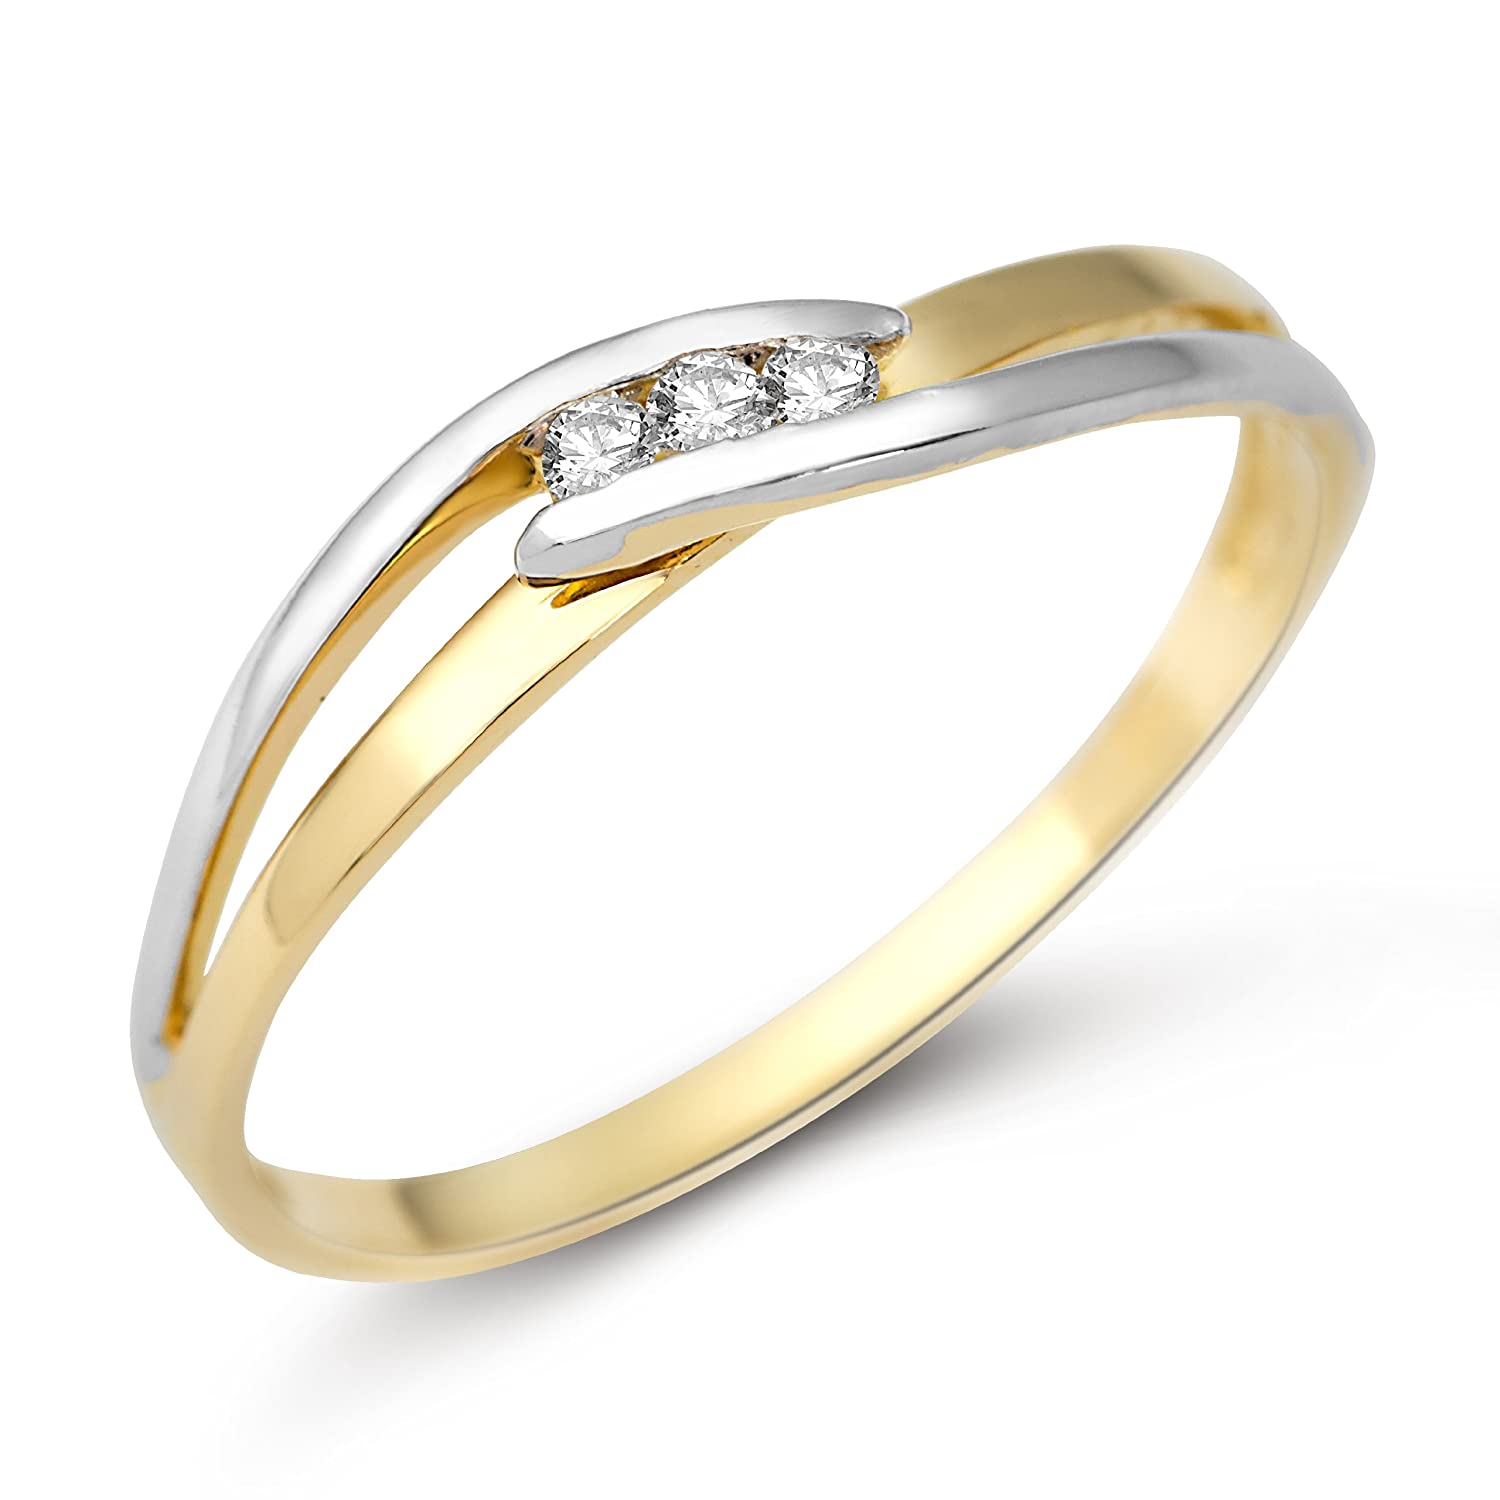 Miore Damen Ring 9 Karat (375) Bicolor Brillanten bestellen